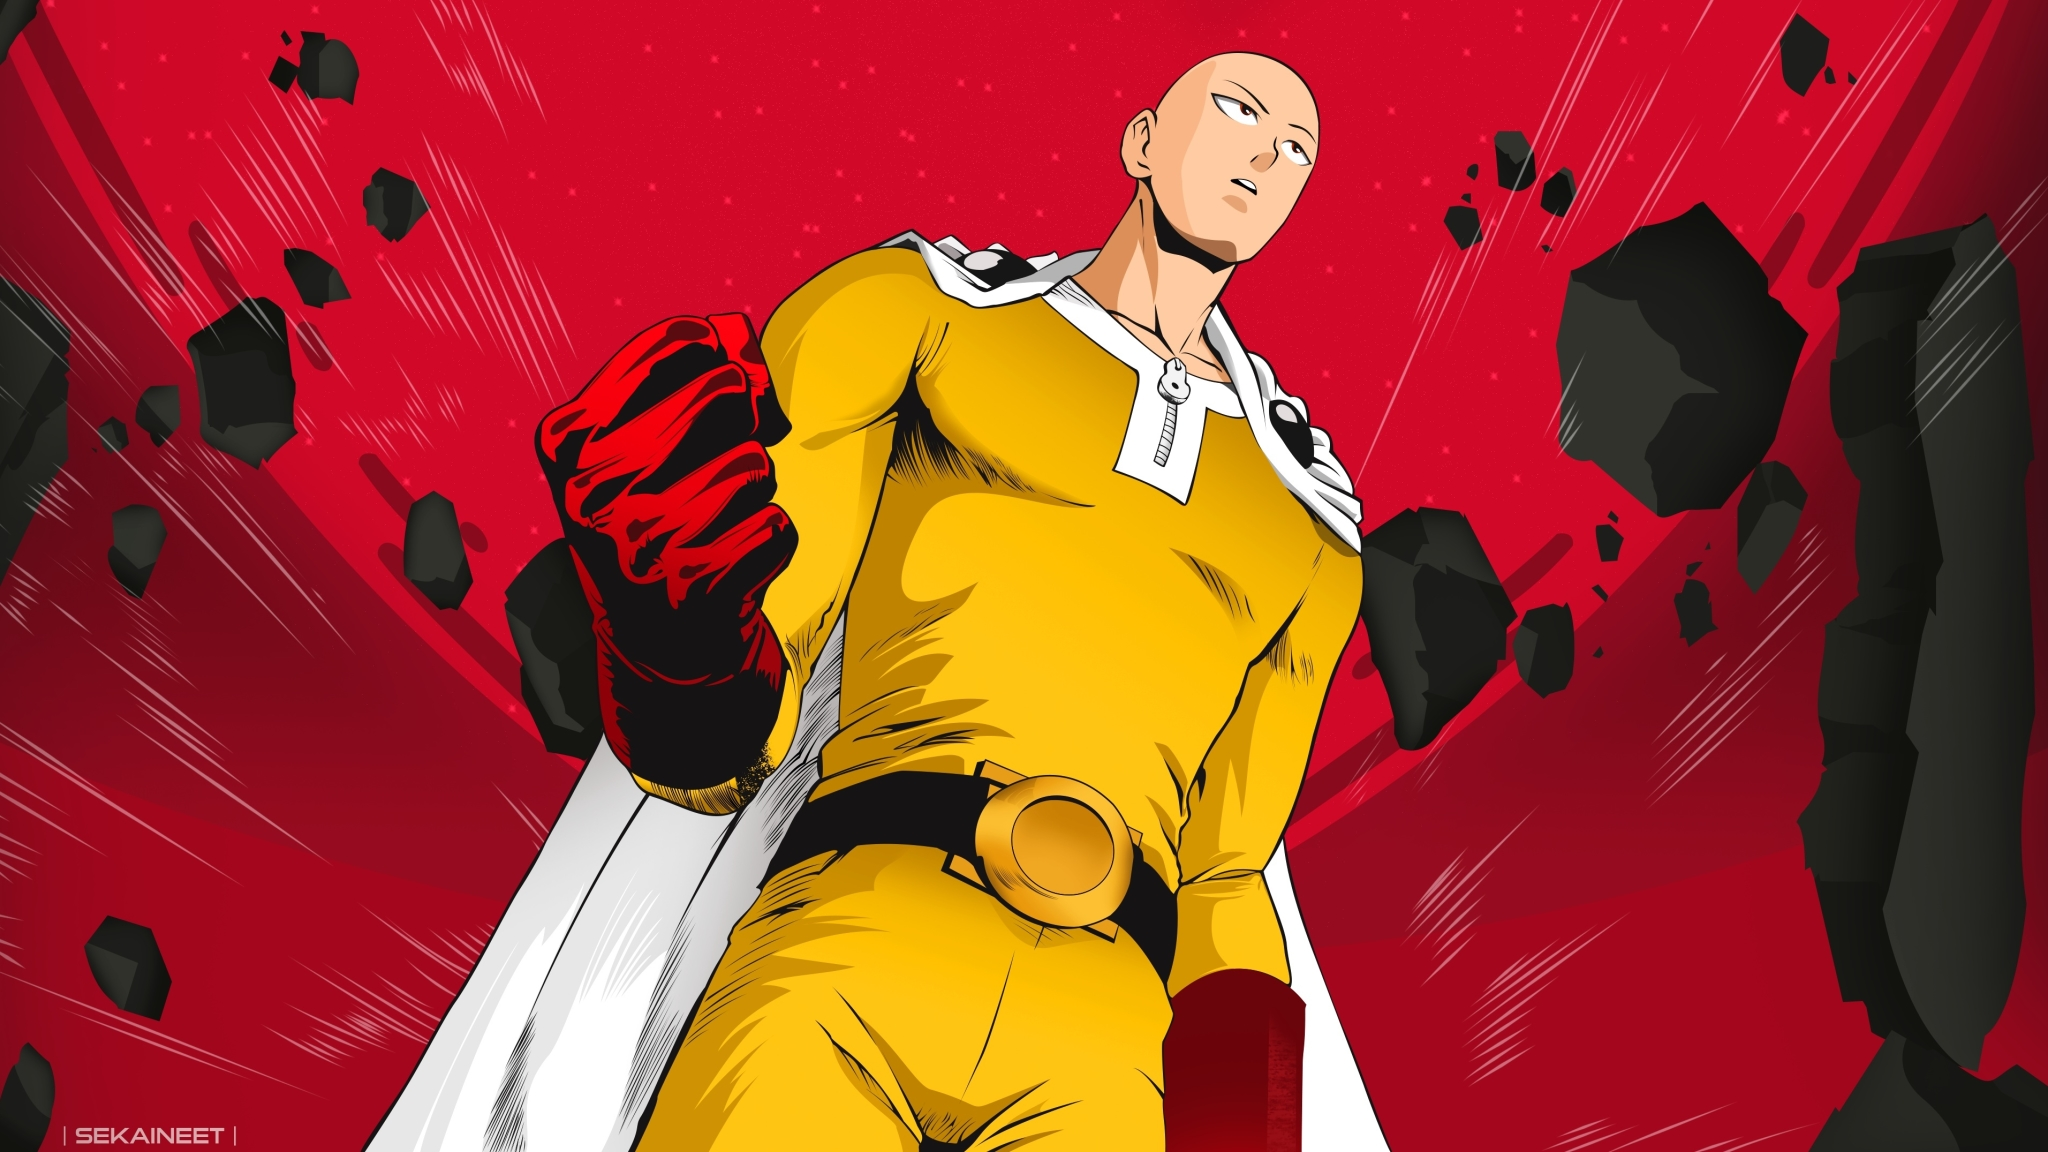 2048x1152 Saitama In One Punch Man 2048x1152 Resolution Wallpaper Hd Anime 4k Wallpapers Images Photos And Background